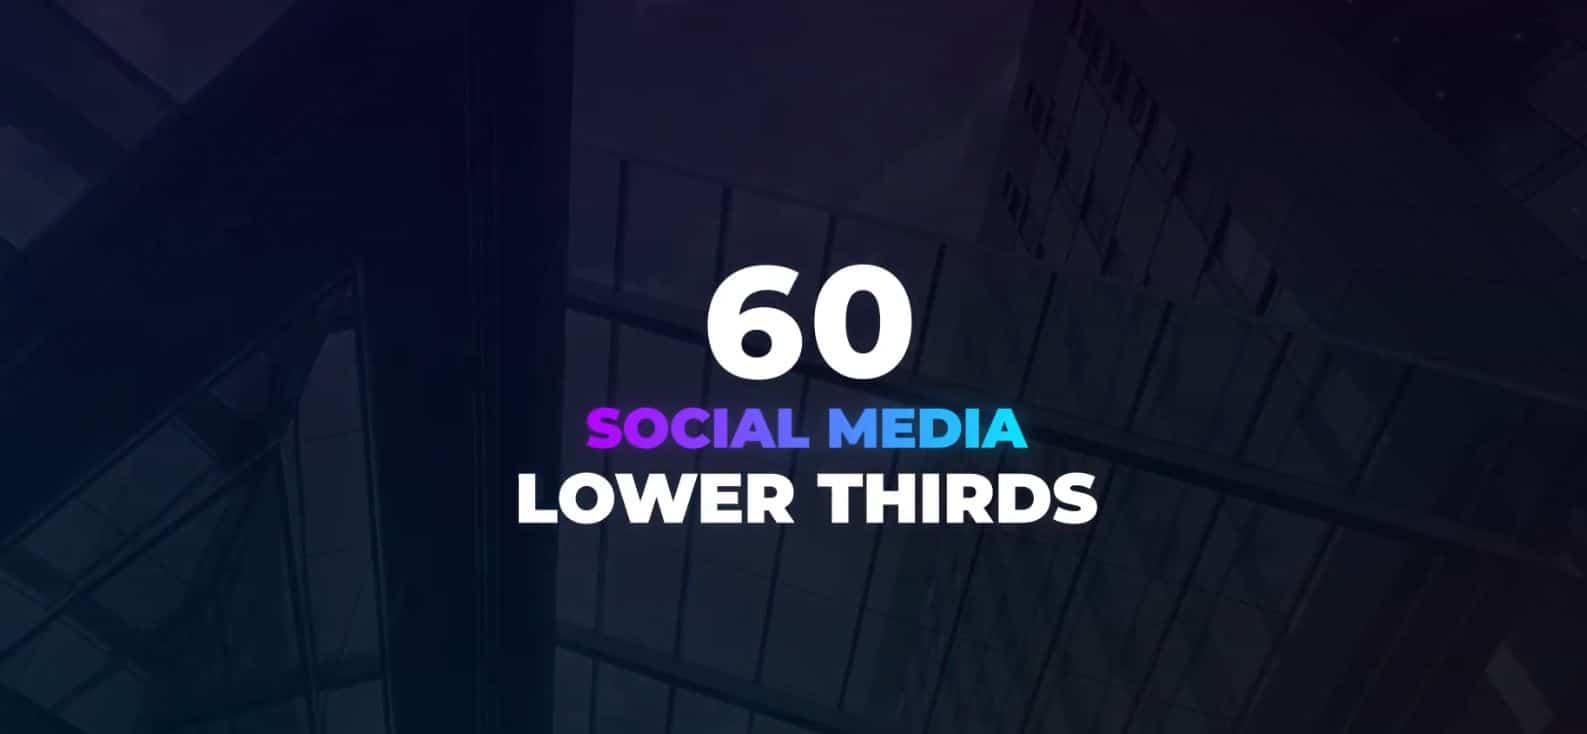 Photo of [After Effect] 60 Social Media Lower Thirds